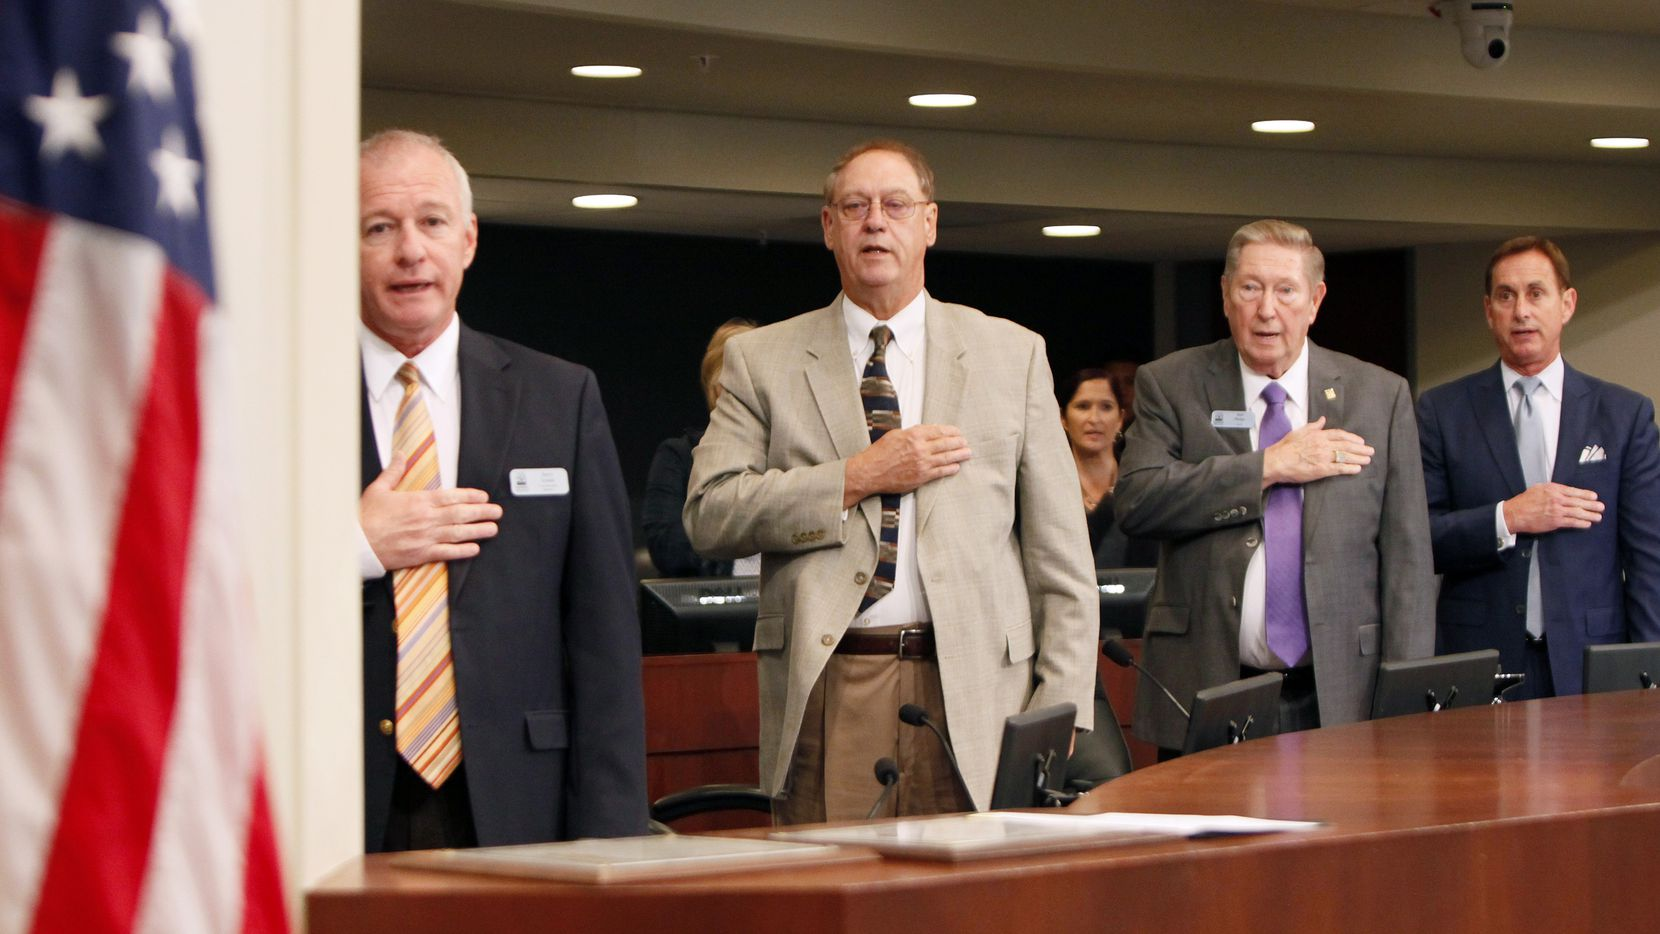 Farmers Branch Mayor Bob Phelps, third from left, stands with other council members during the Pledge of Allegiance before the start of a Farmers Branch City Council meeting, on Aug. 16, 2016 at Farmers Branch City Hall in Farmers Branch.